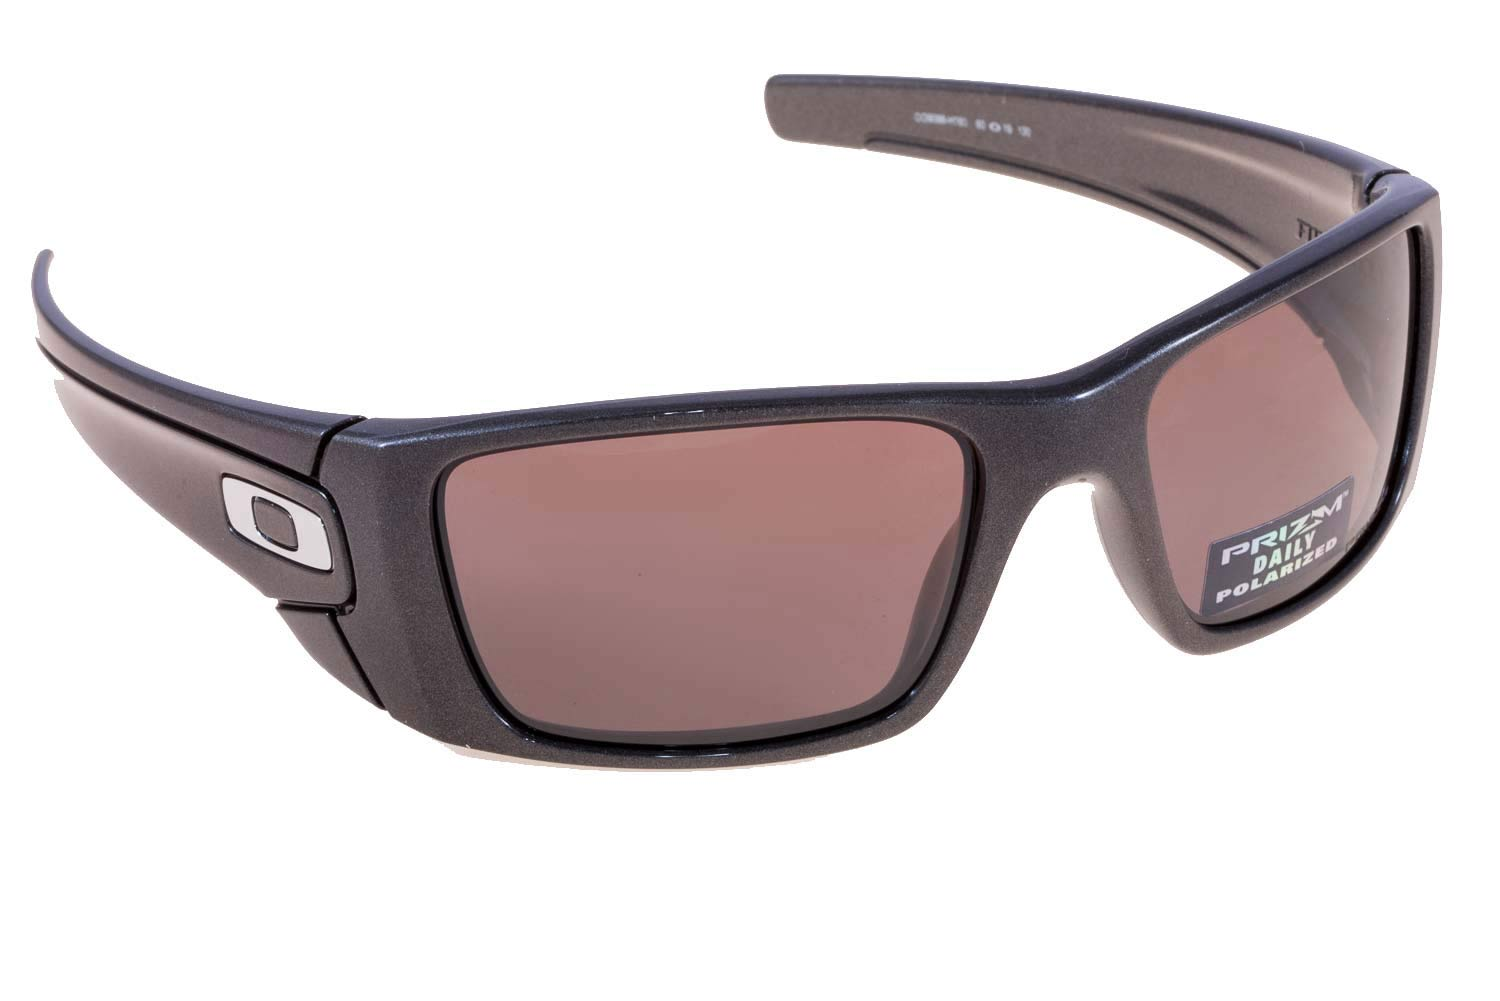 c44d334604d SUNGLASSES Oakley Fuel Cell 9096 9096 H760 PRIZM POLARIZED